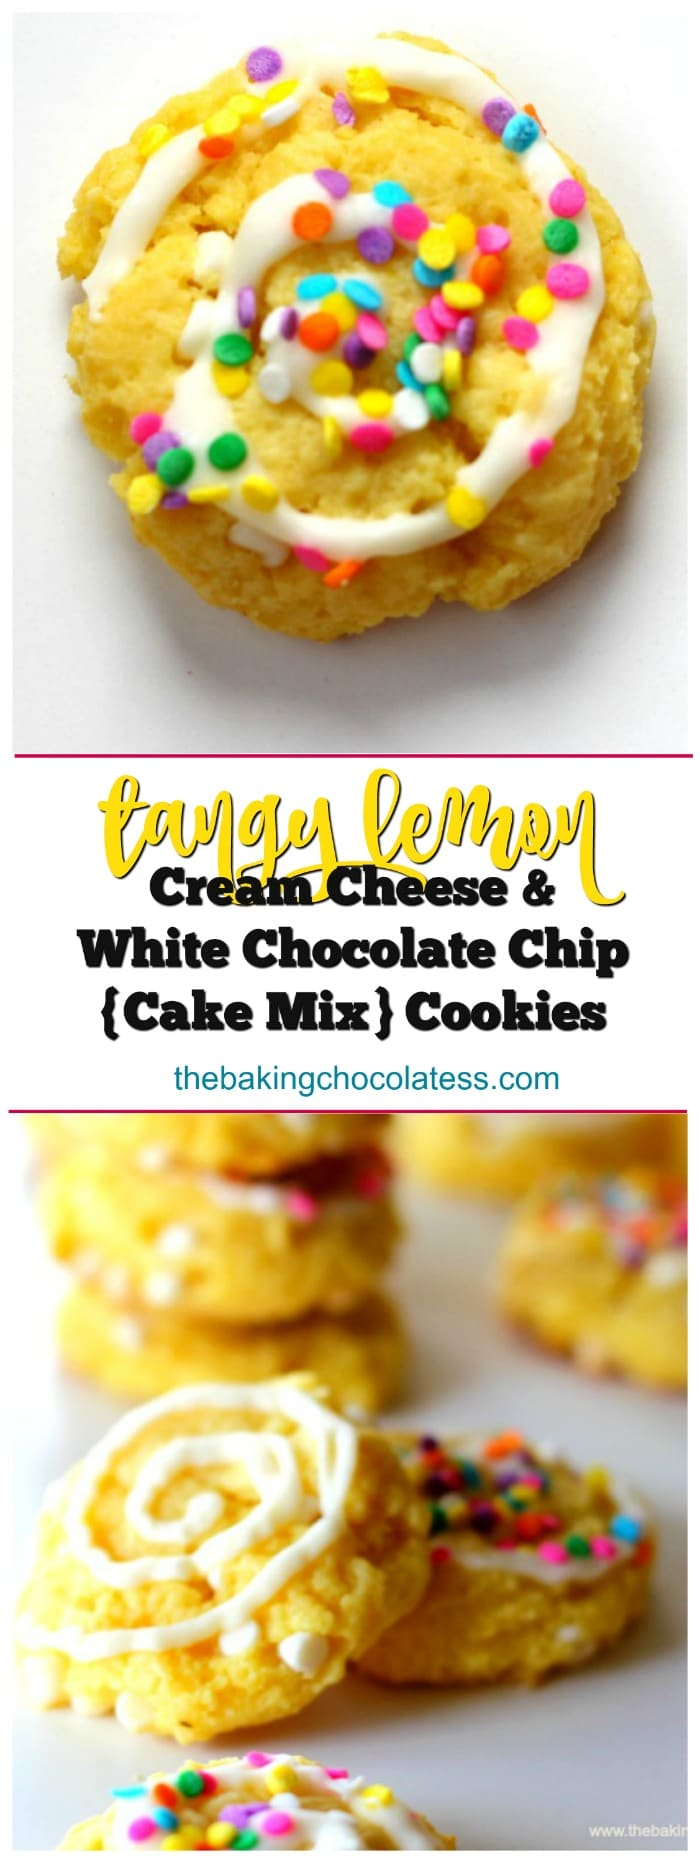 Tangy Lemon Cream Cheese & White Chocolate Chip {Cake Mix} Cookies